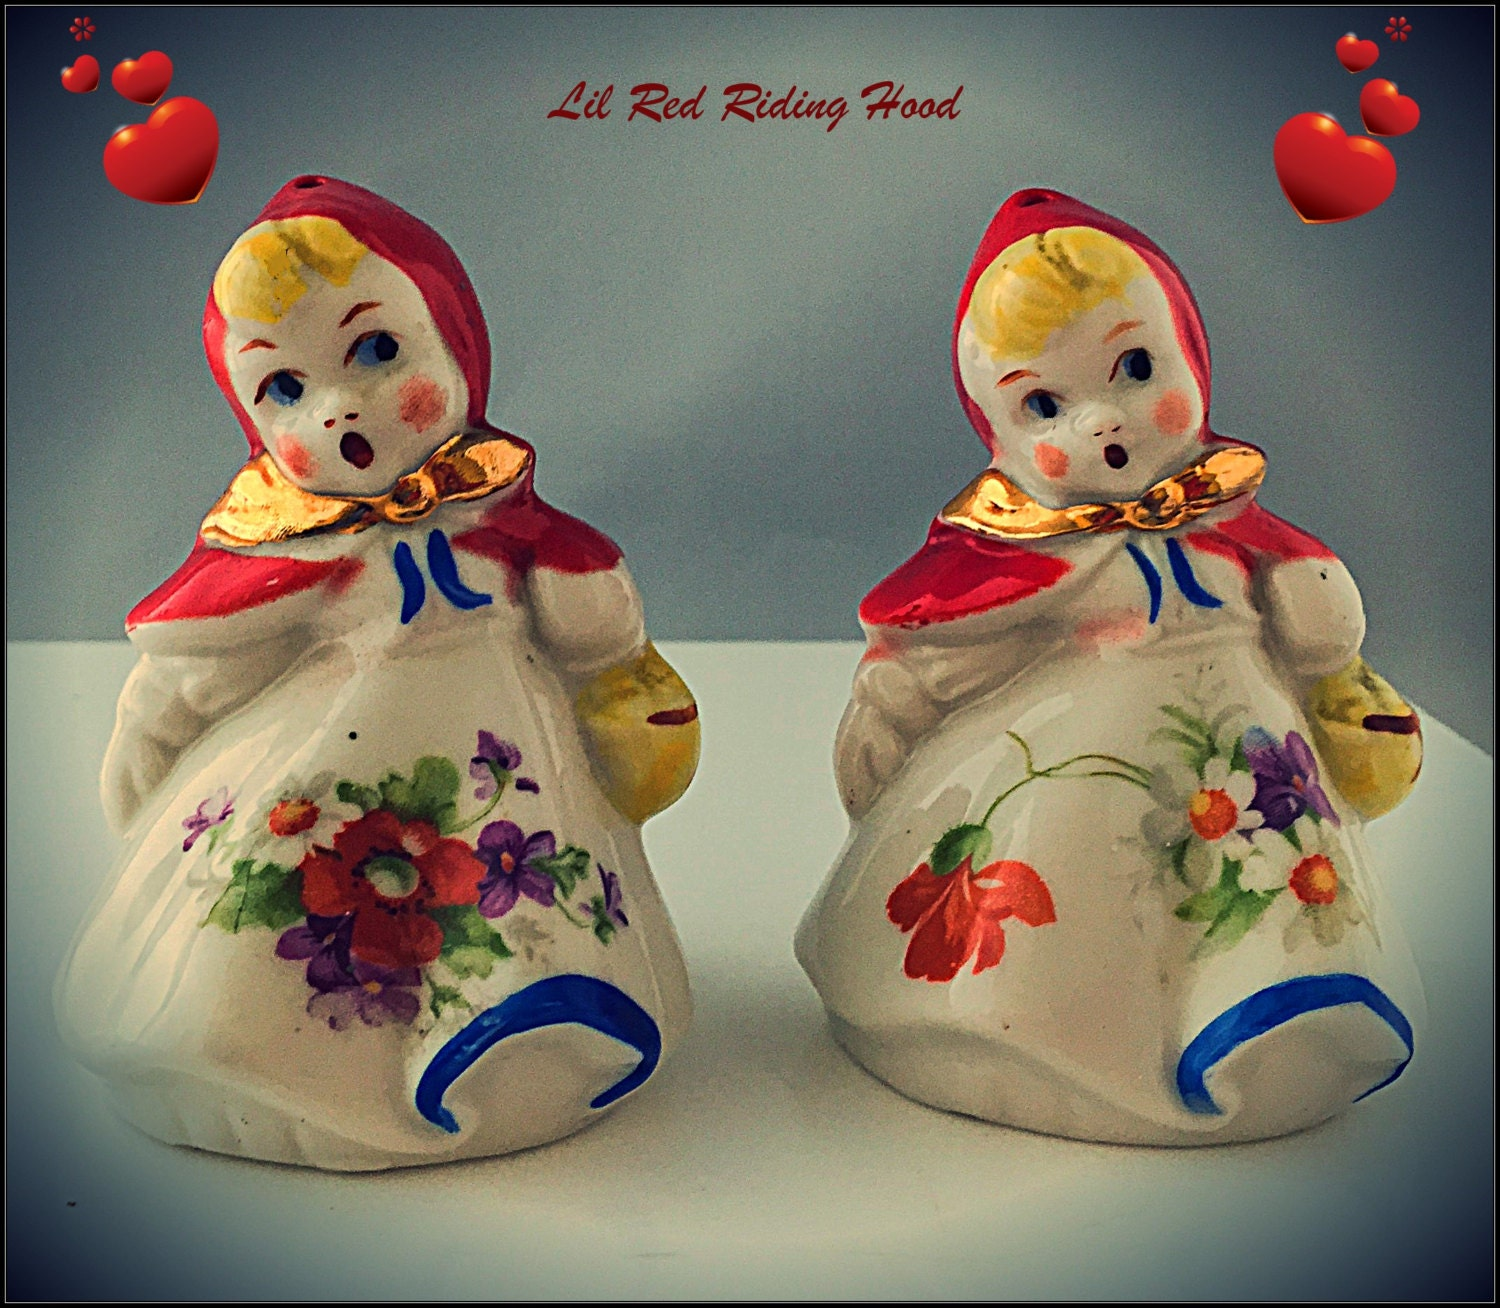 Vintage Ceramic Little Red Riding Hood Salt And Pepper Shakers